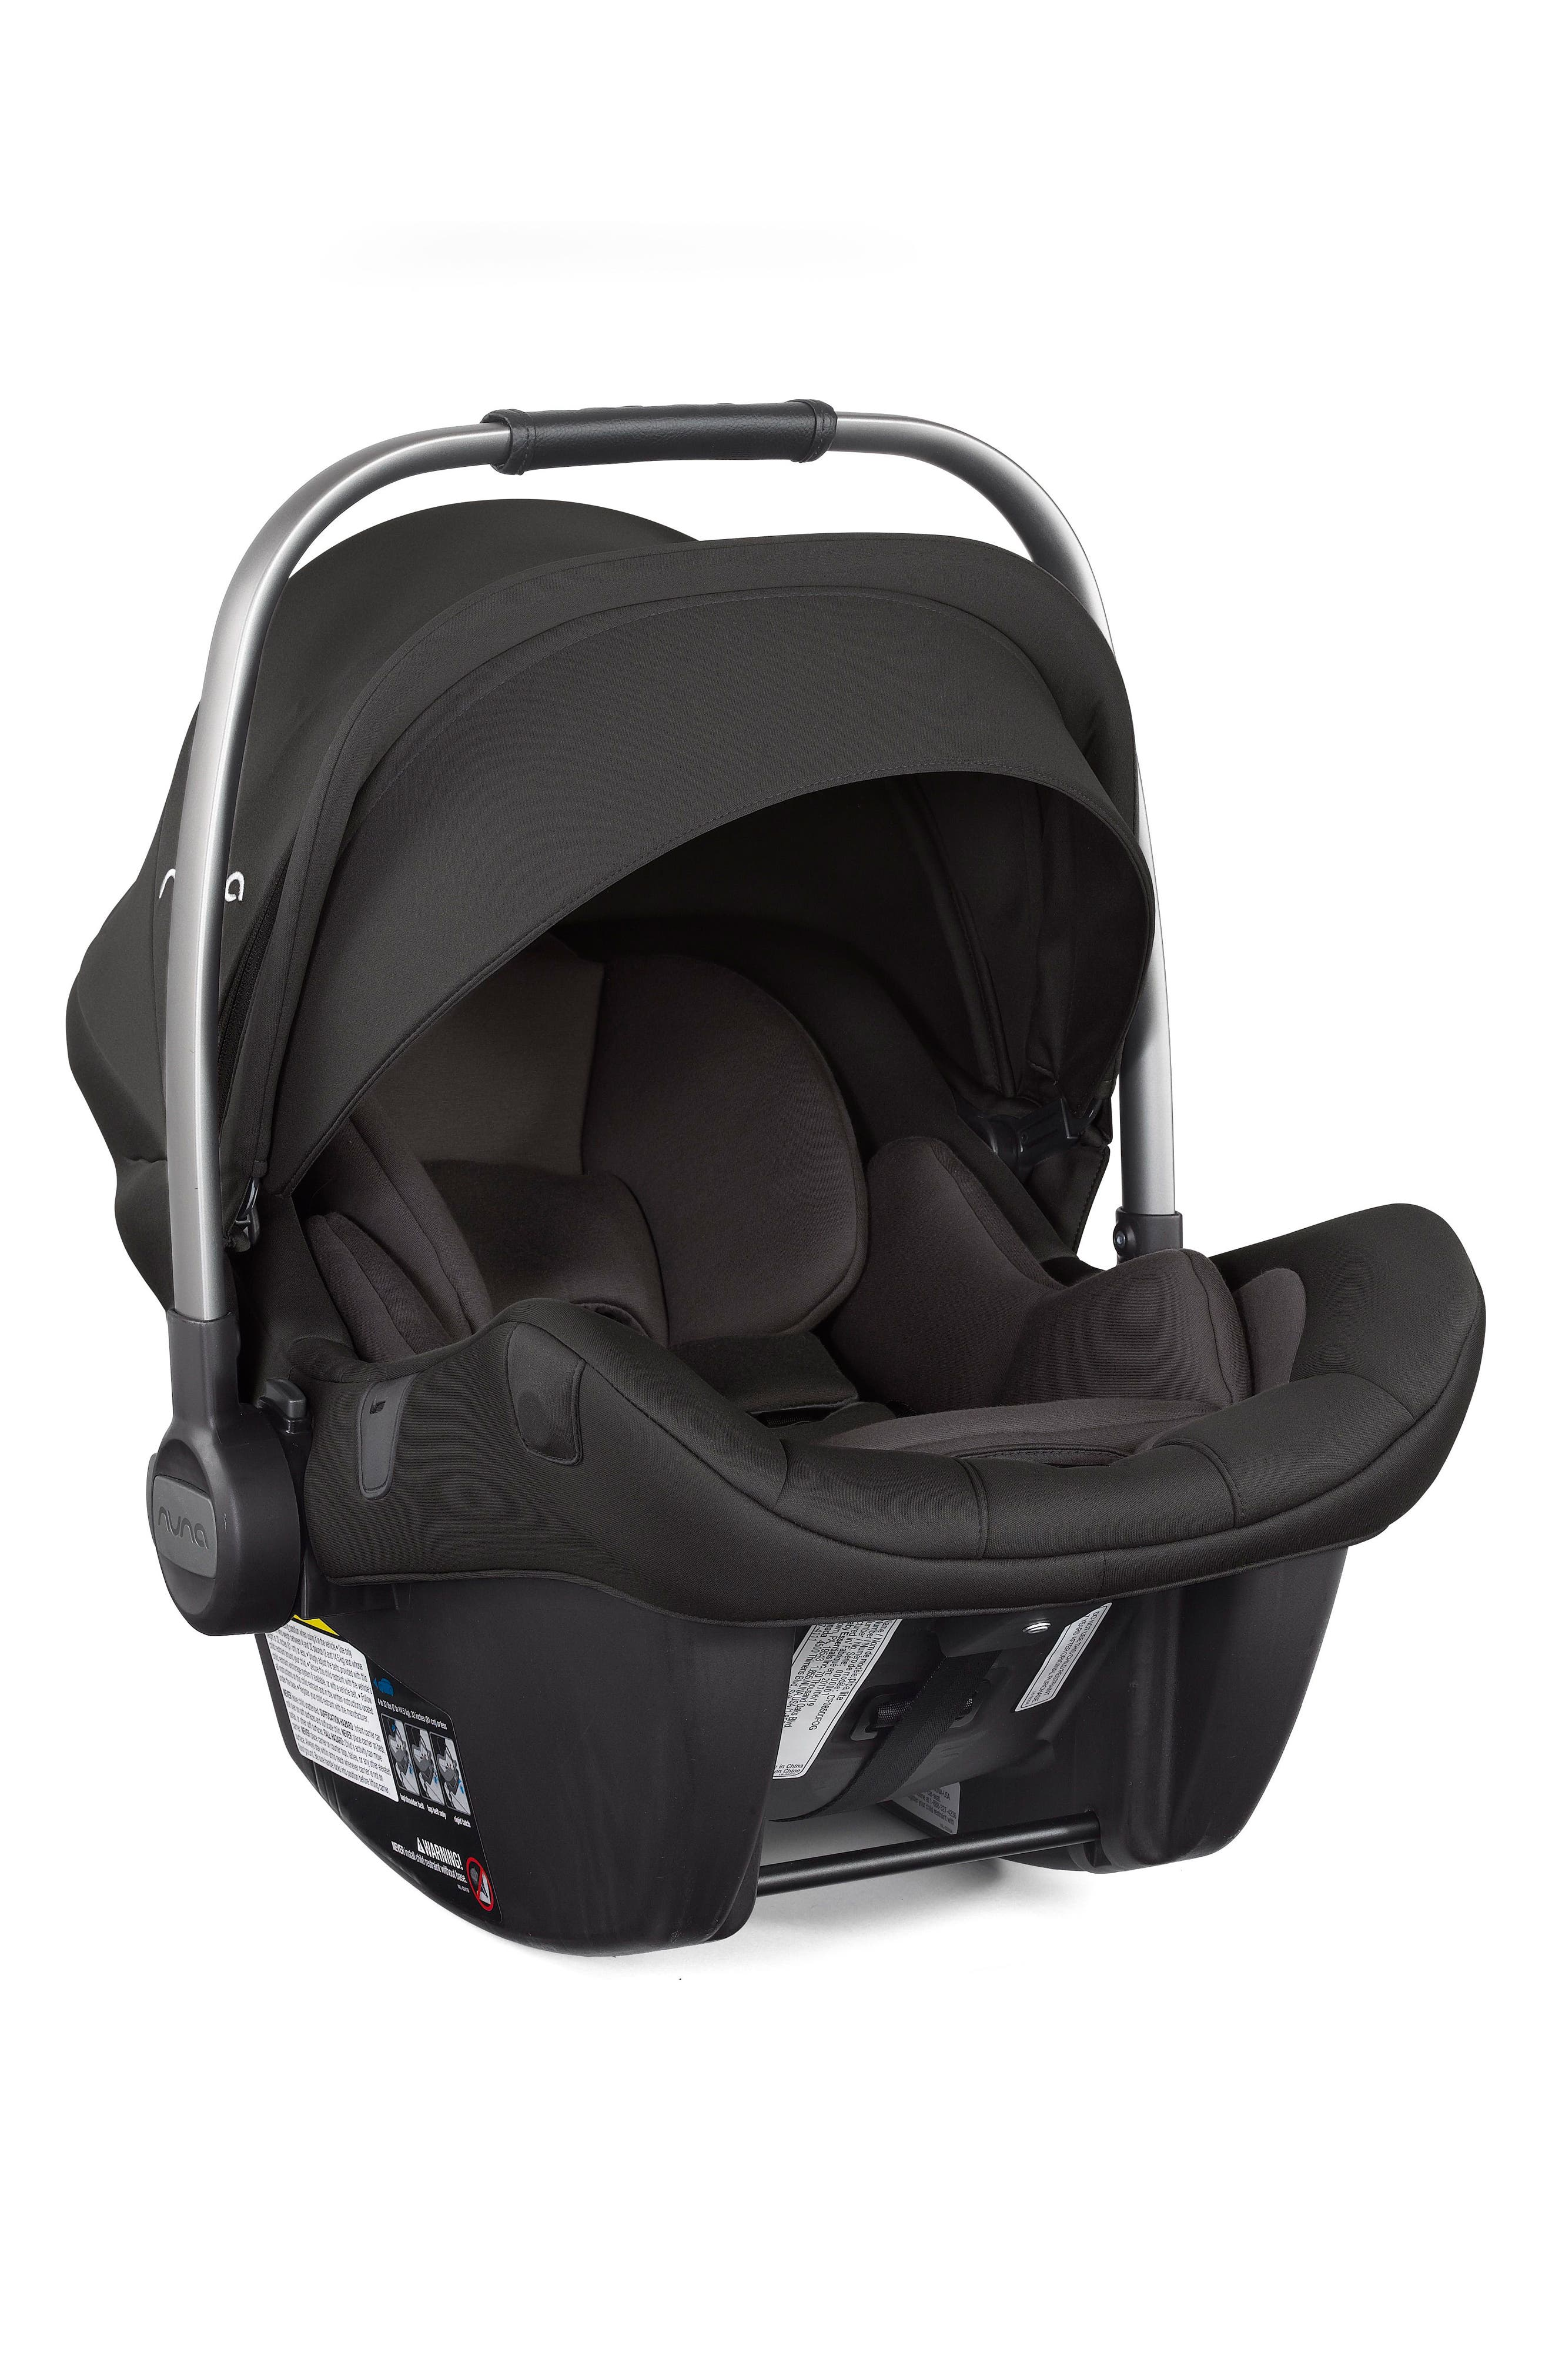 2017 PIPA<sup>™</sup> Lite LX Infant Car Seat & Base,                             Alternate thumbnail 3, color,                             STONE